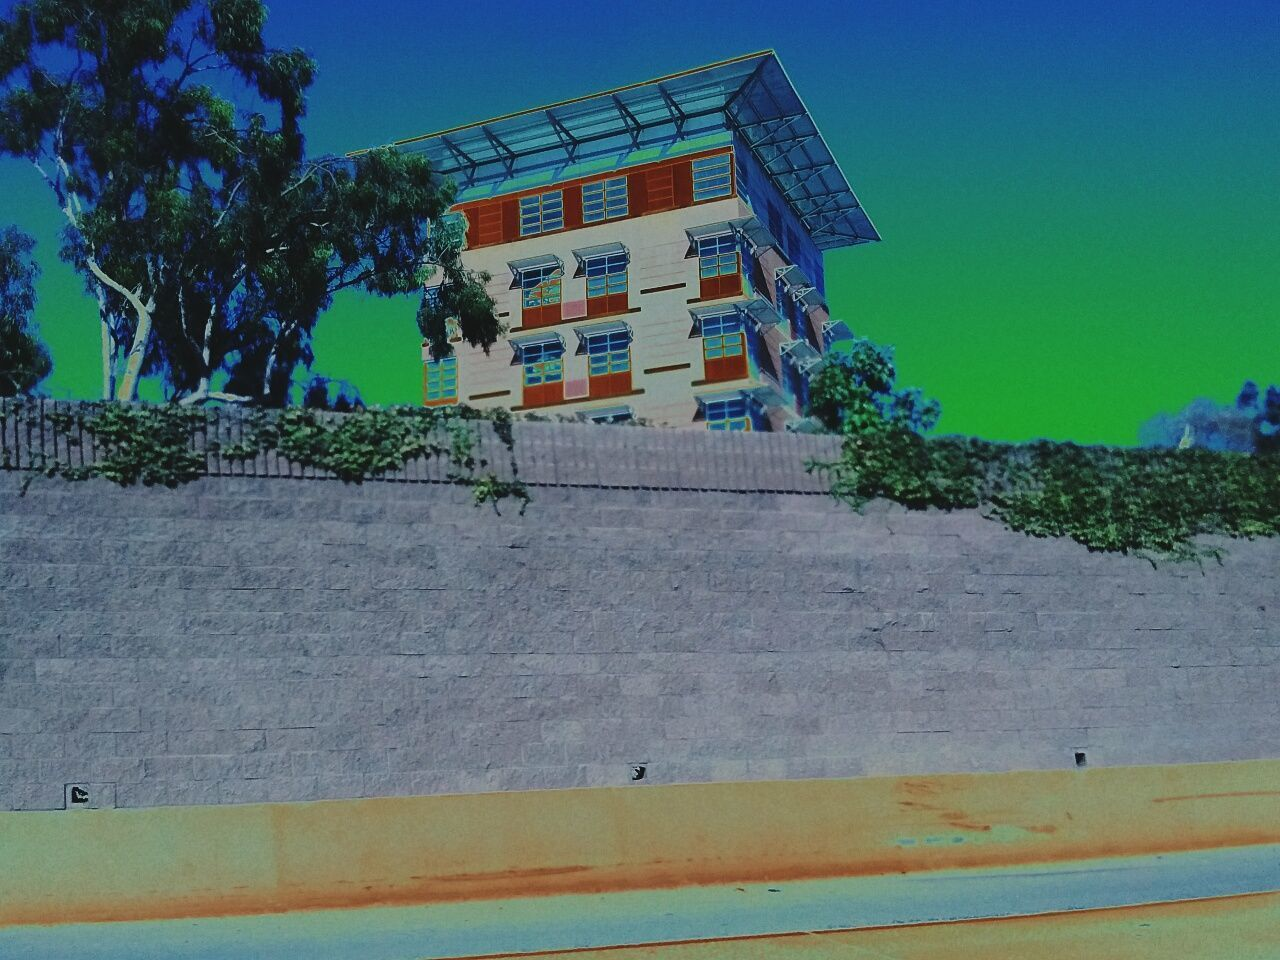 architecture, building exterior, built structure, tree, day, outdoors, no people, low angle view, sky, clear sky, nature